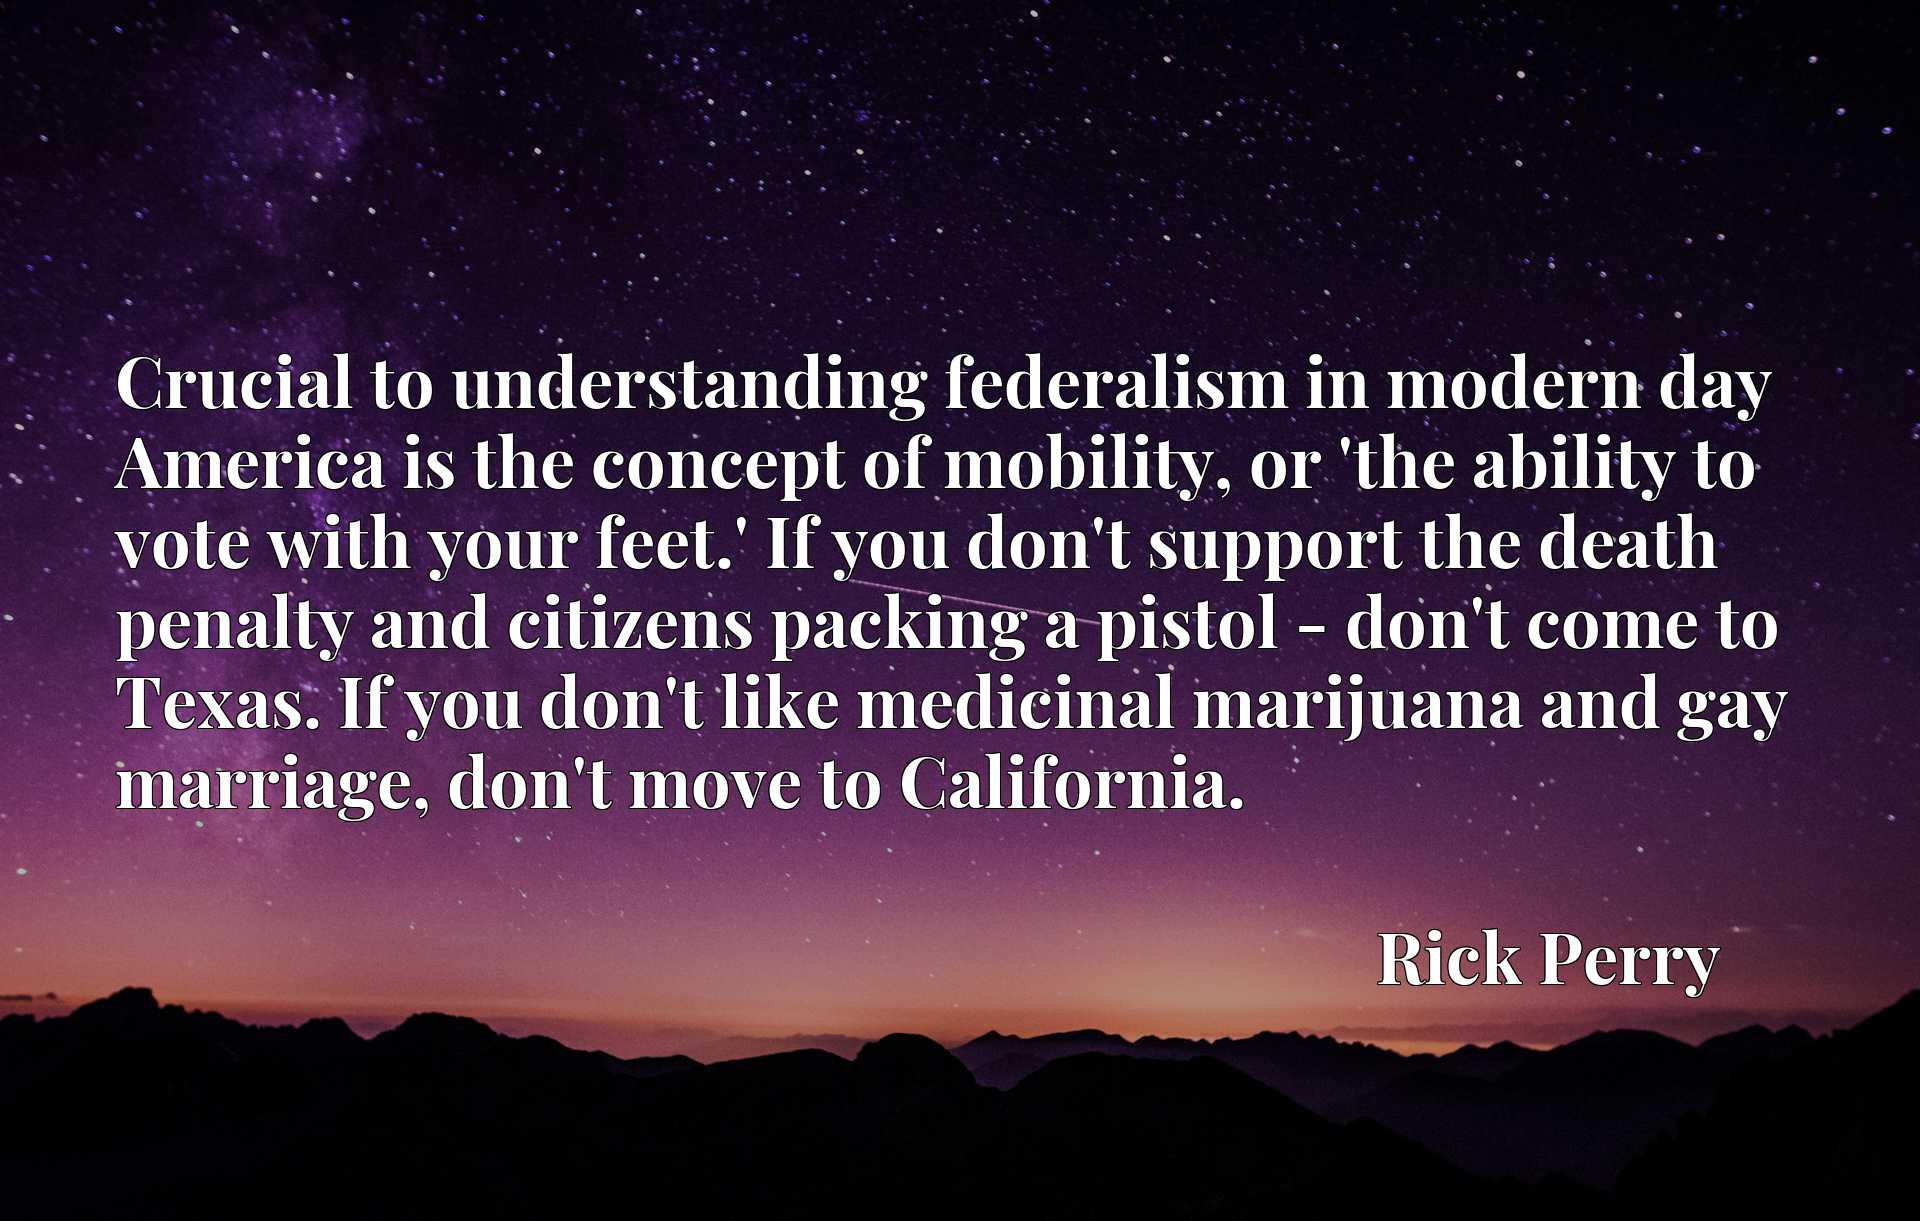 Crucial to understanding federalism in modern day America is the concept of mobility, or 'the ability to vote with your feet.' If you don't support the death penalty and citizens packing a pistol - don't come to Texas. If you don't like medicinal marijuana and gay marriage, don't move to California.